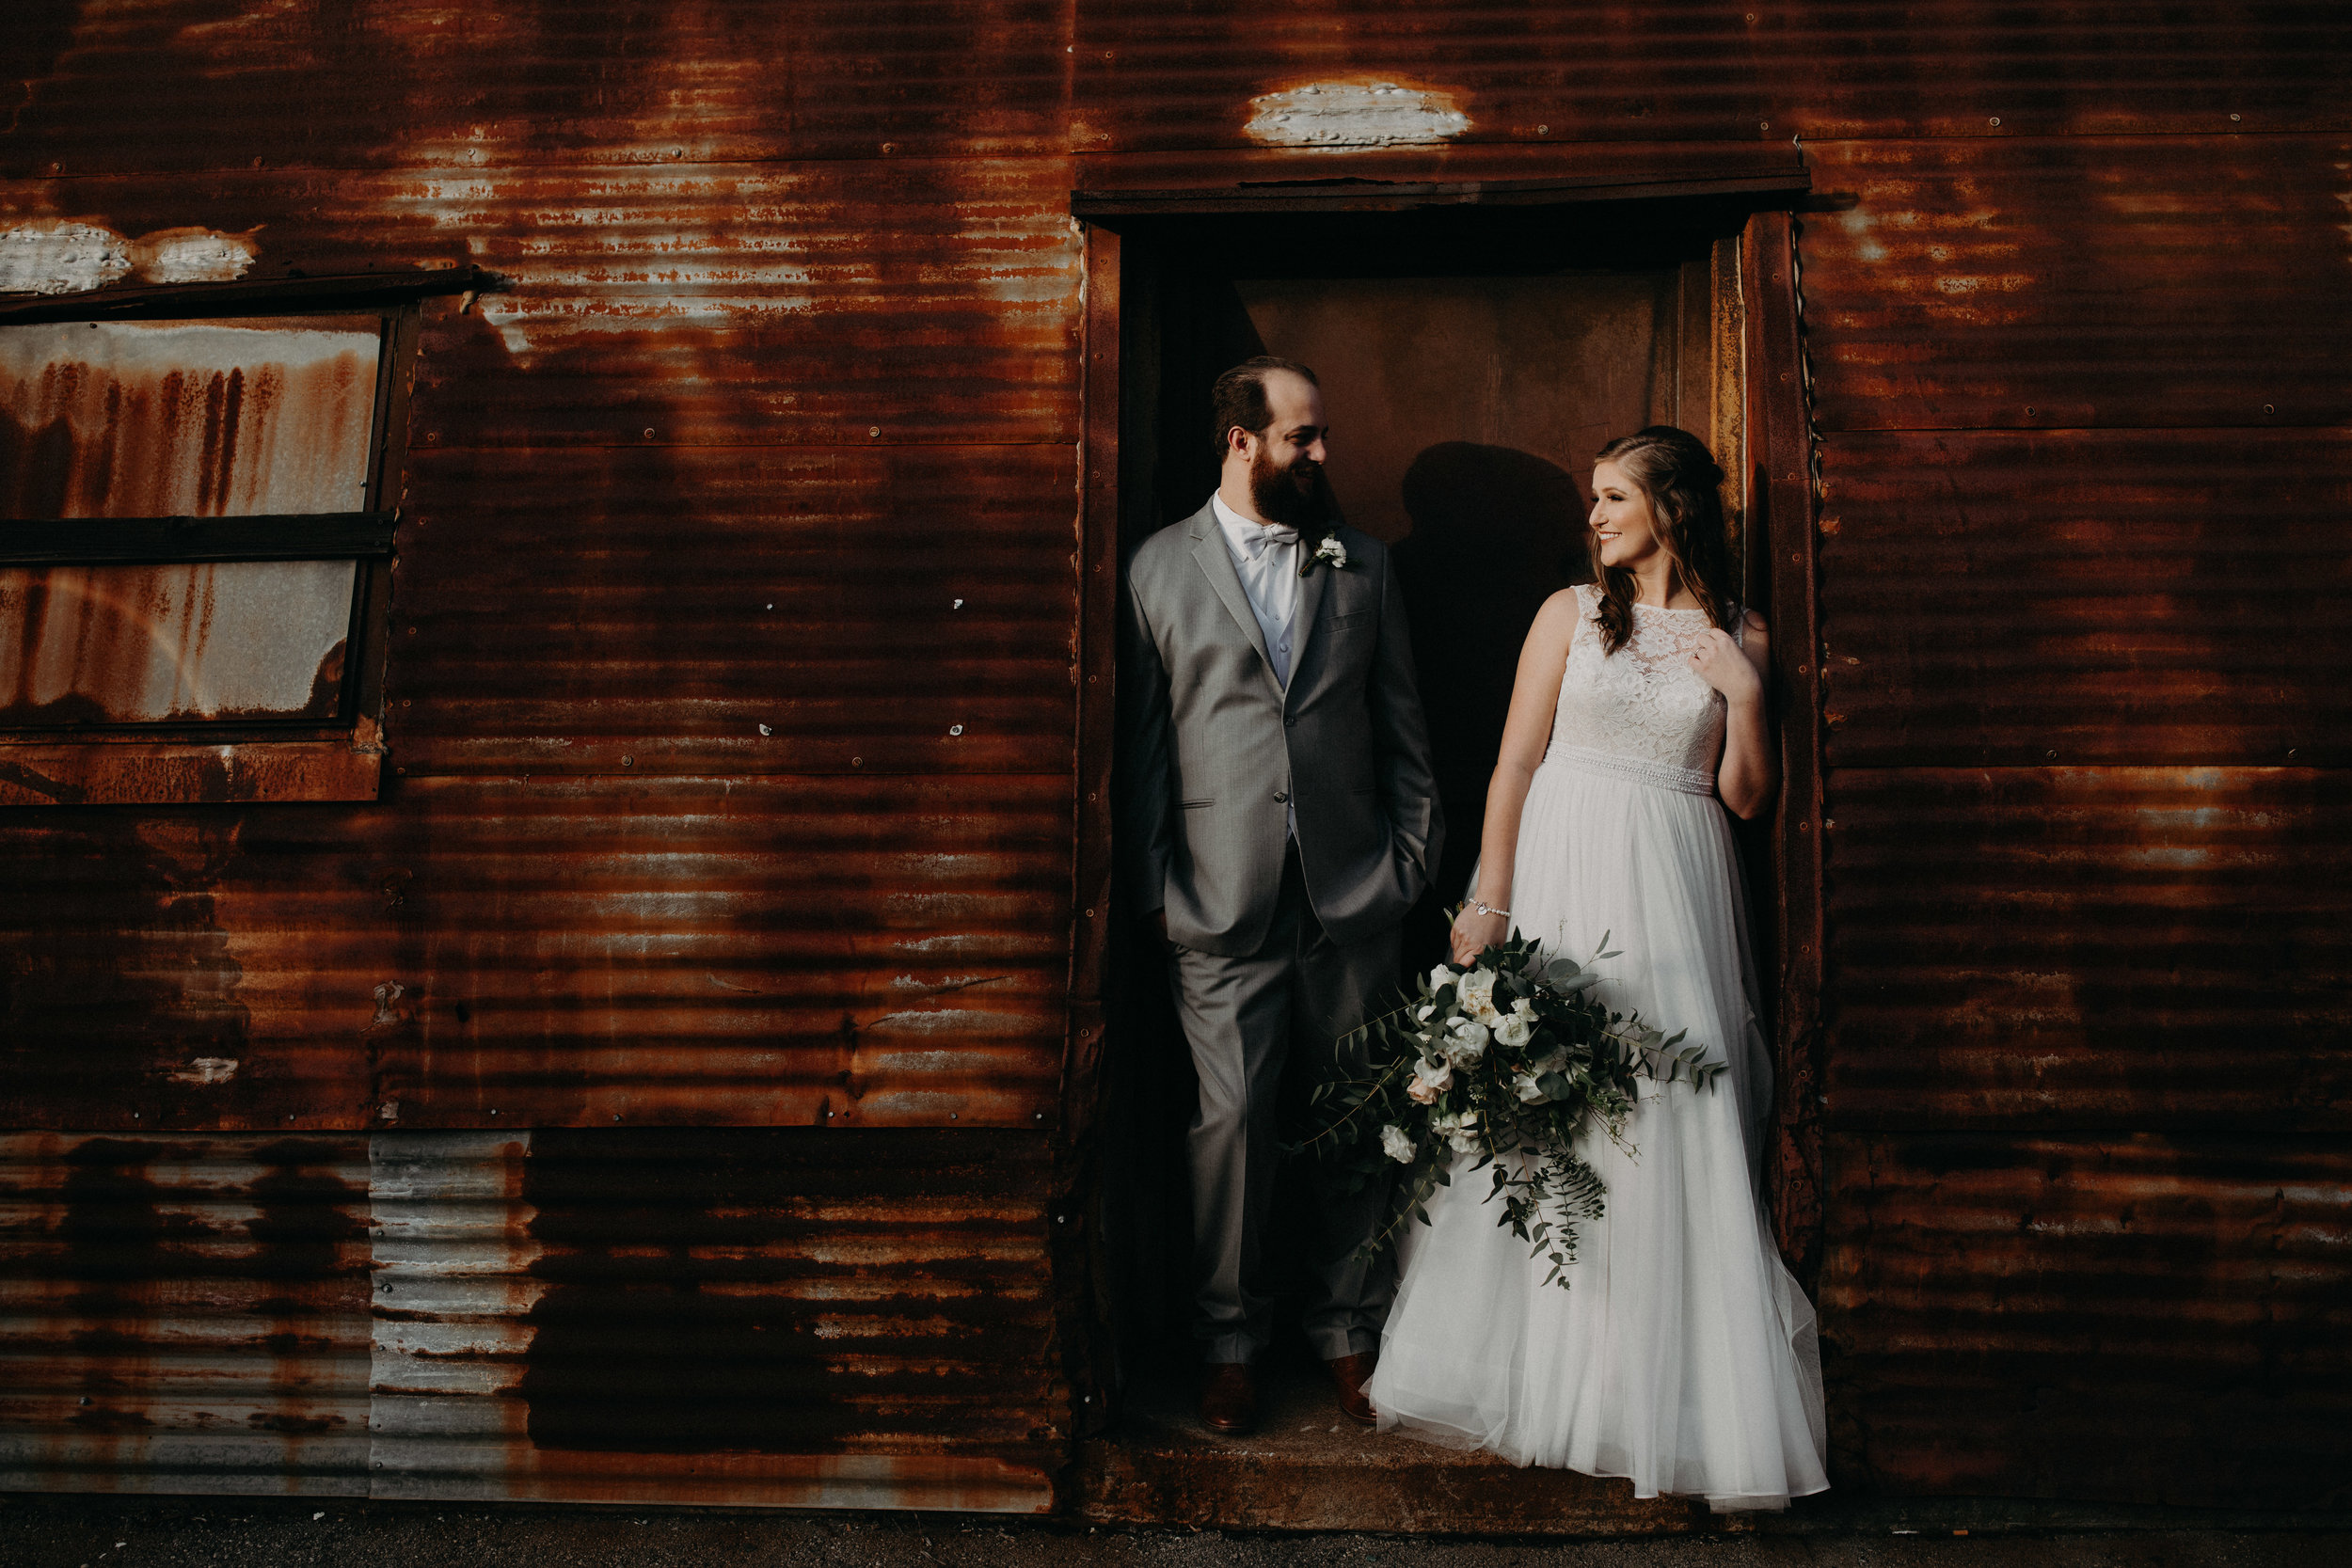 Smoky Hollow Studios Wedding Anne & Lewis Emily Magers Photography-448.jpg